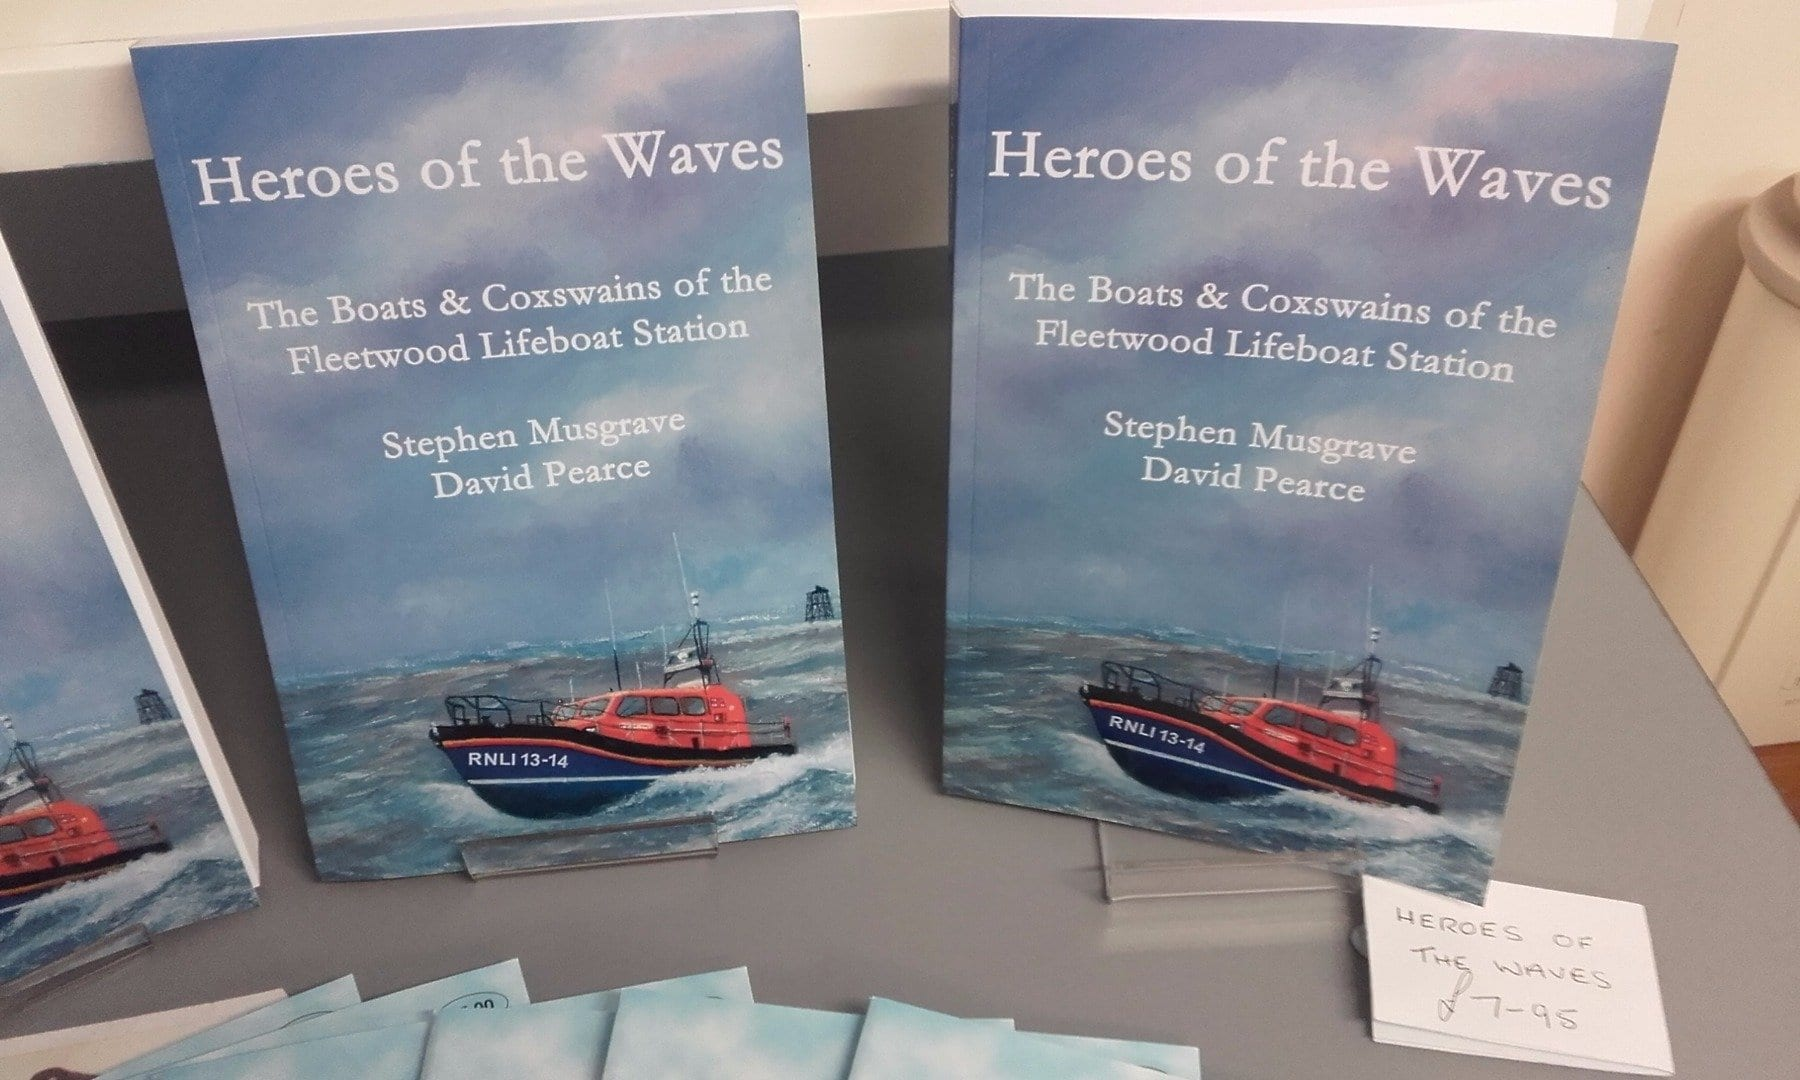 Heroes of the Waves, Fleetwood RNLI